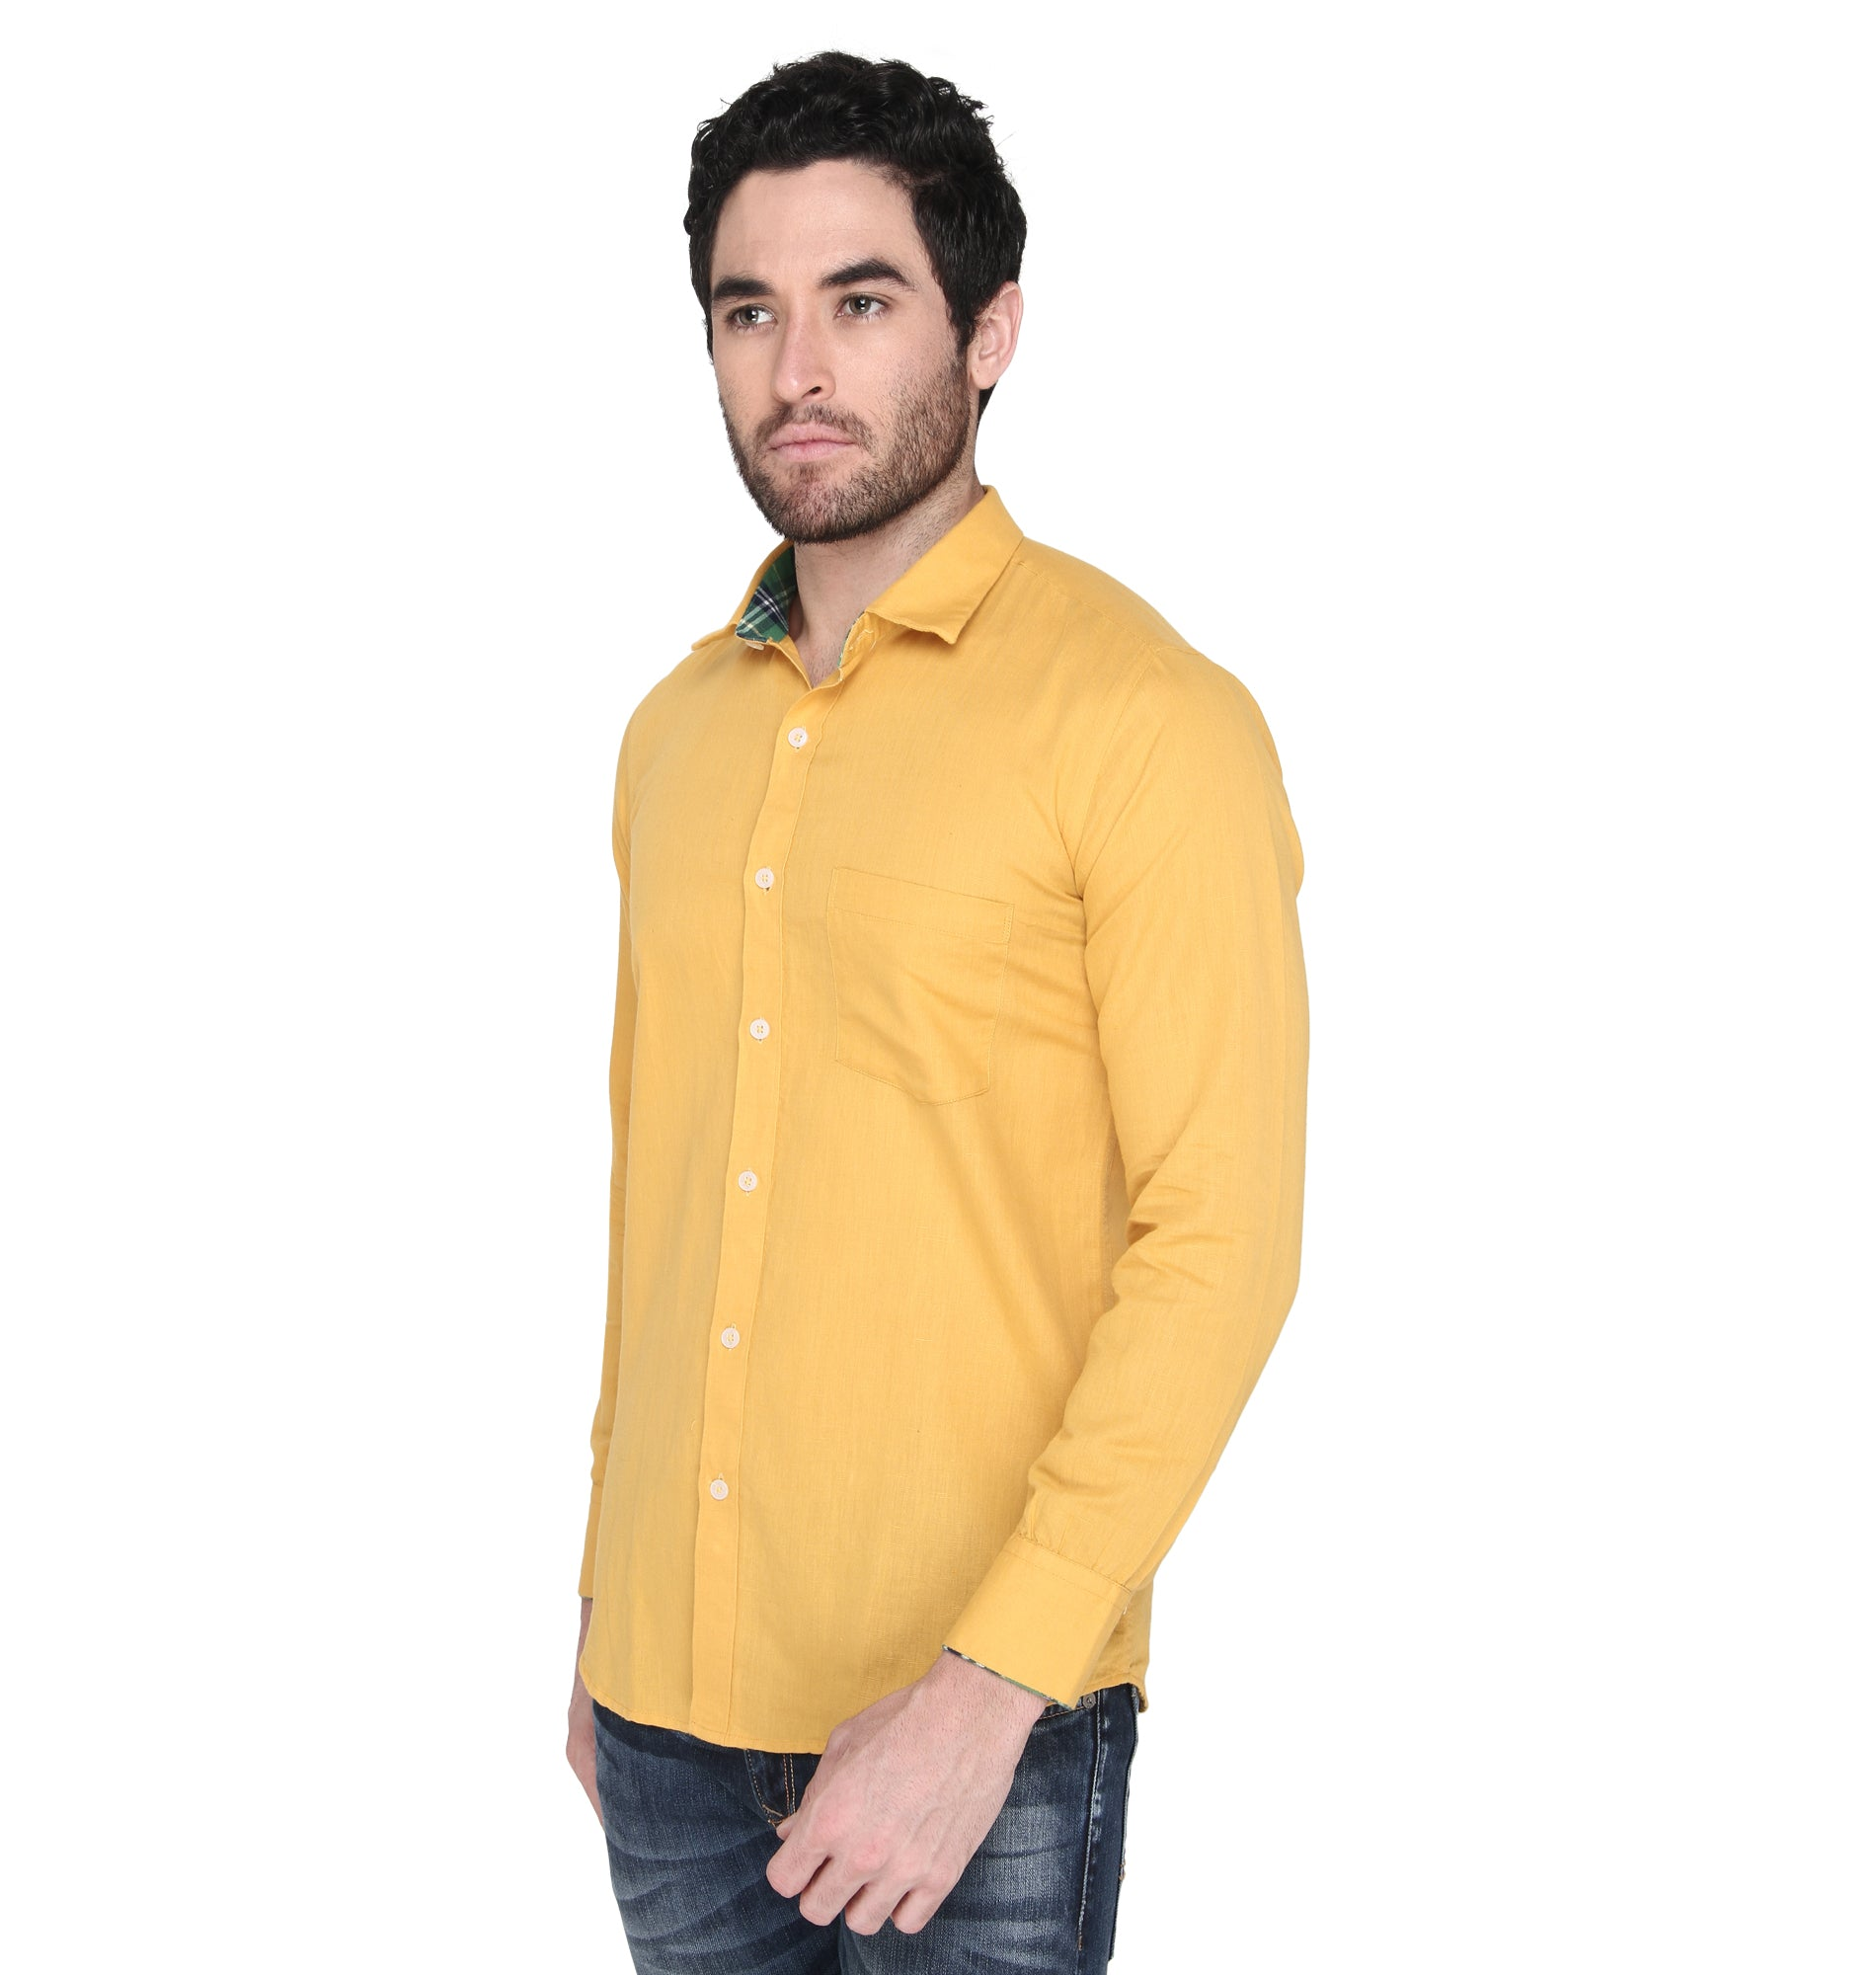 ZIDO cotton Solid Shirt for Men's CNLN1376